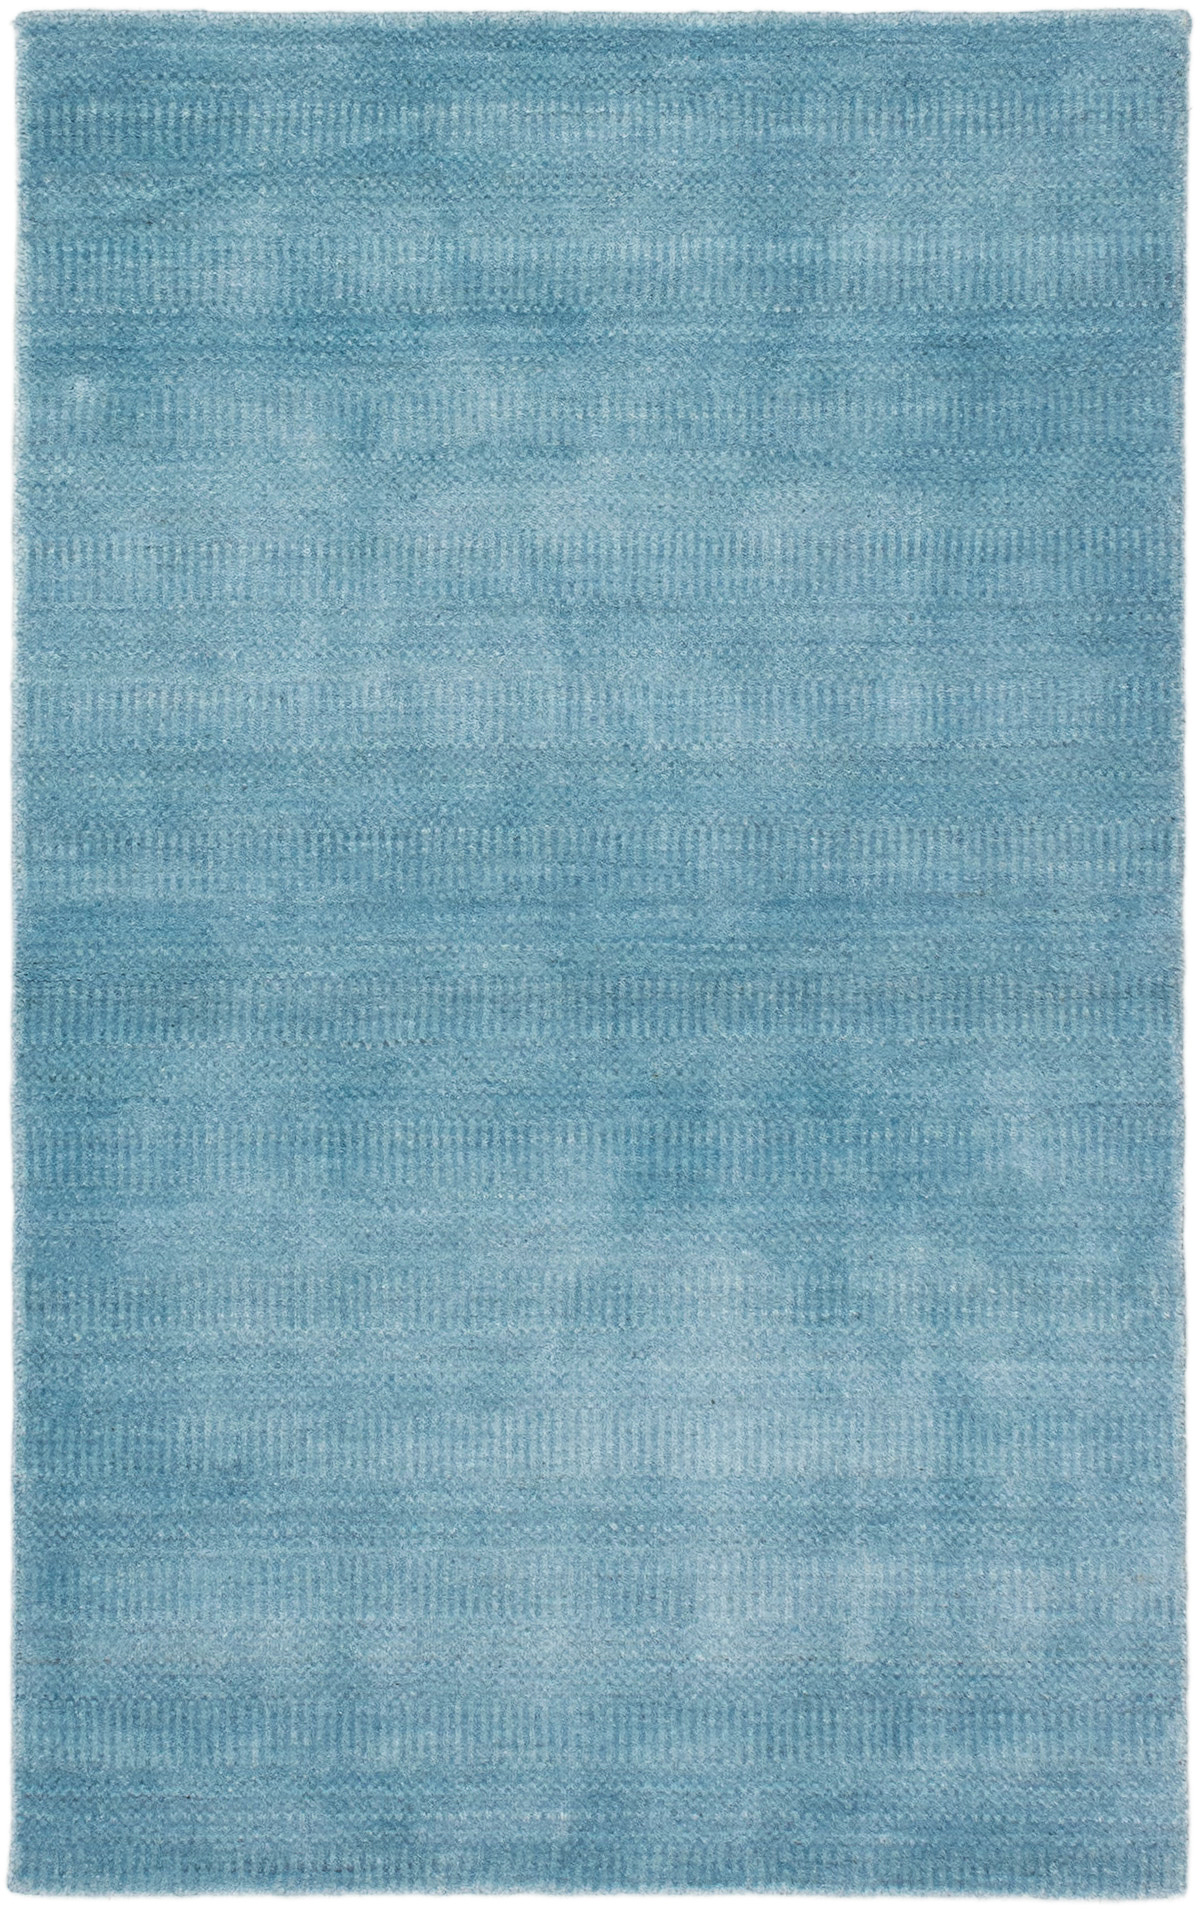 """Hand-knotted Pearl Denim Blue  Rug 3'0"""" x 5'0""""  Size: 3'0"""" x 5'0"""""""